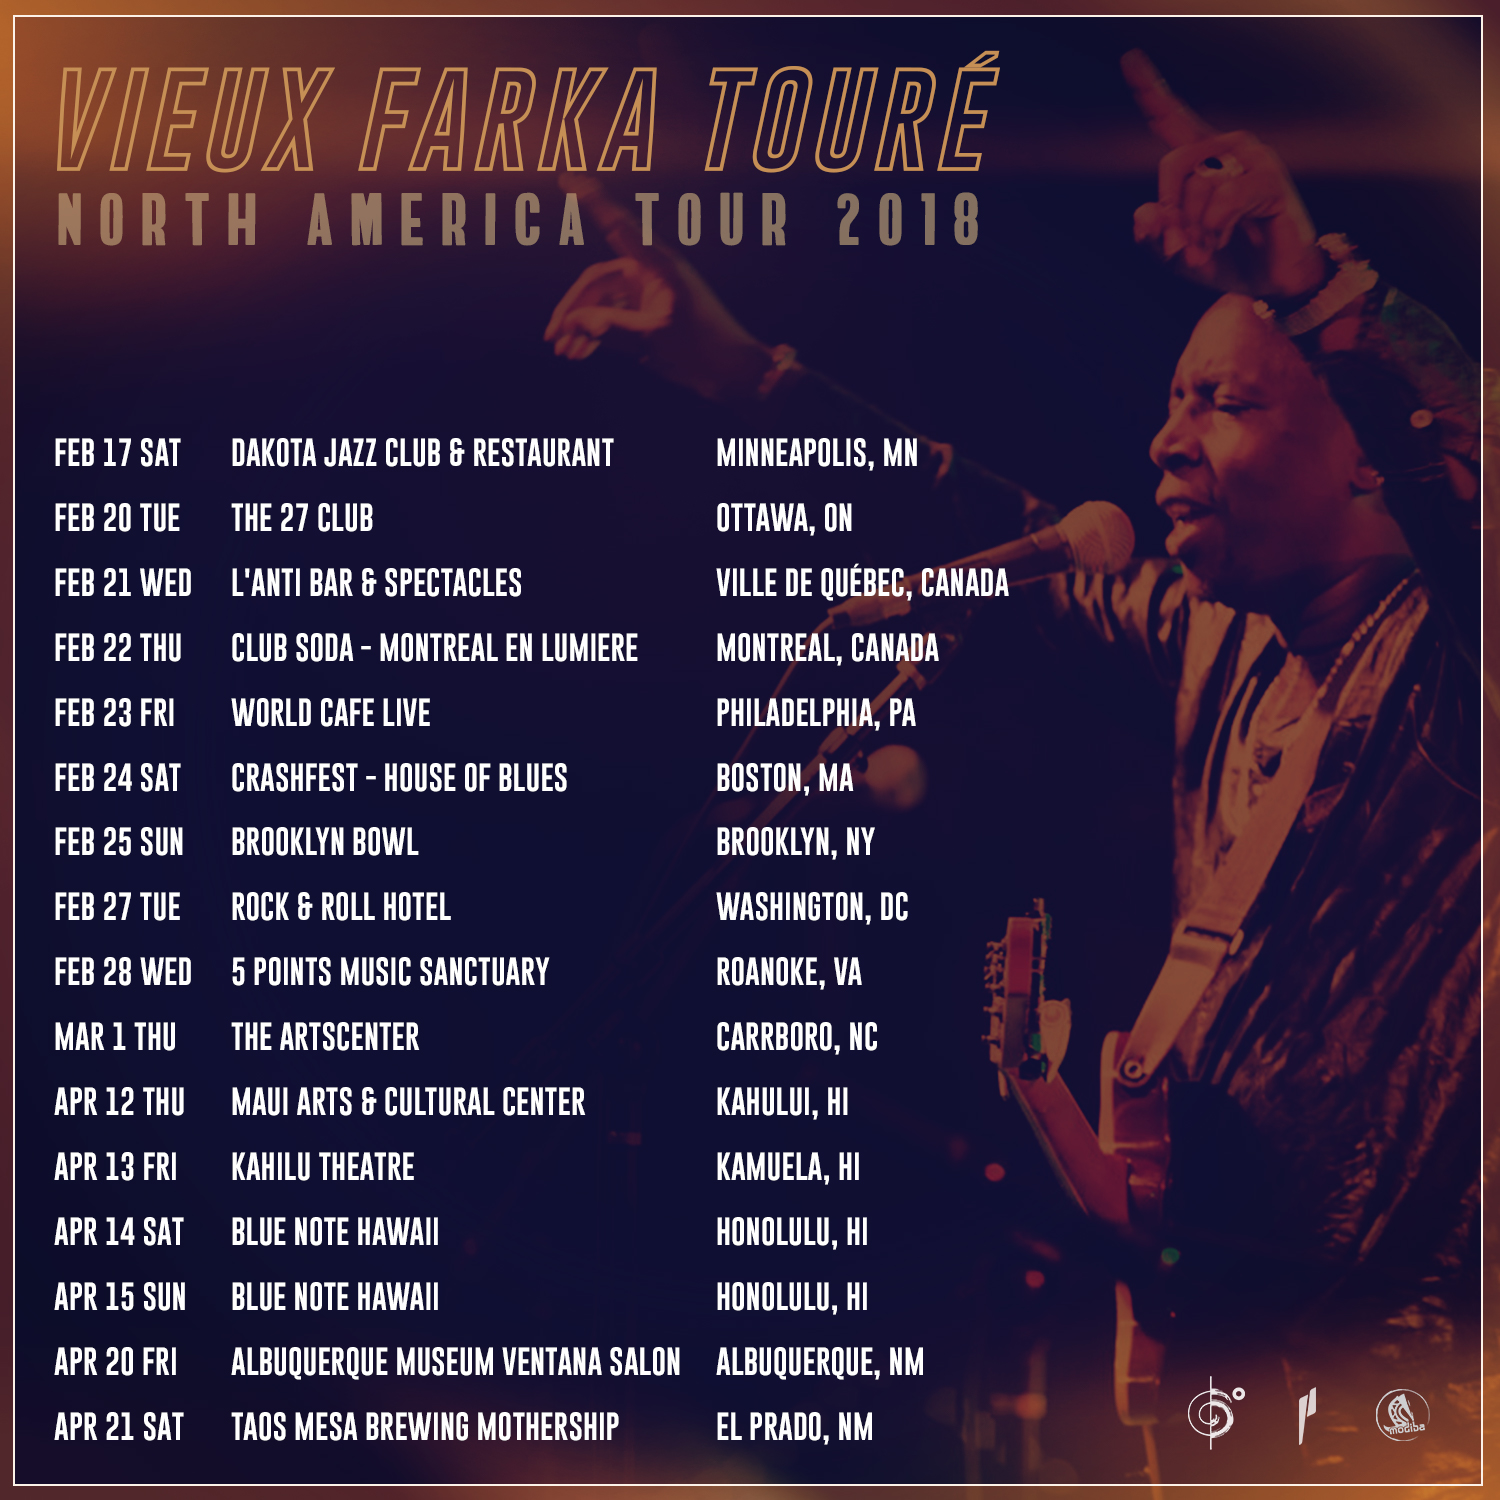 Vieux Farka Touré announces North America 2018 Tour